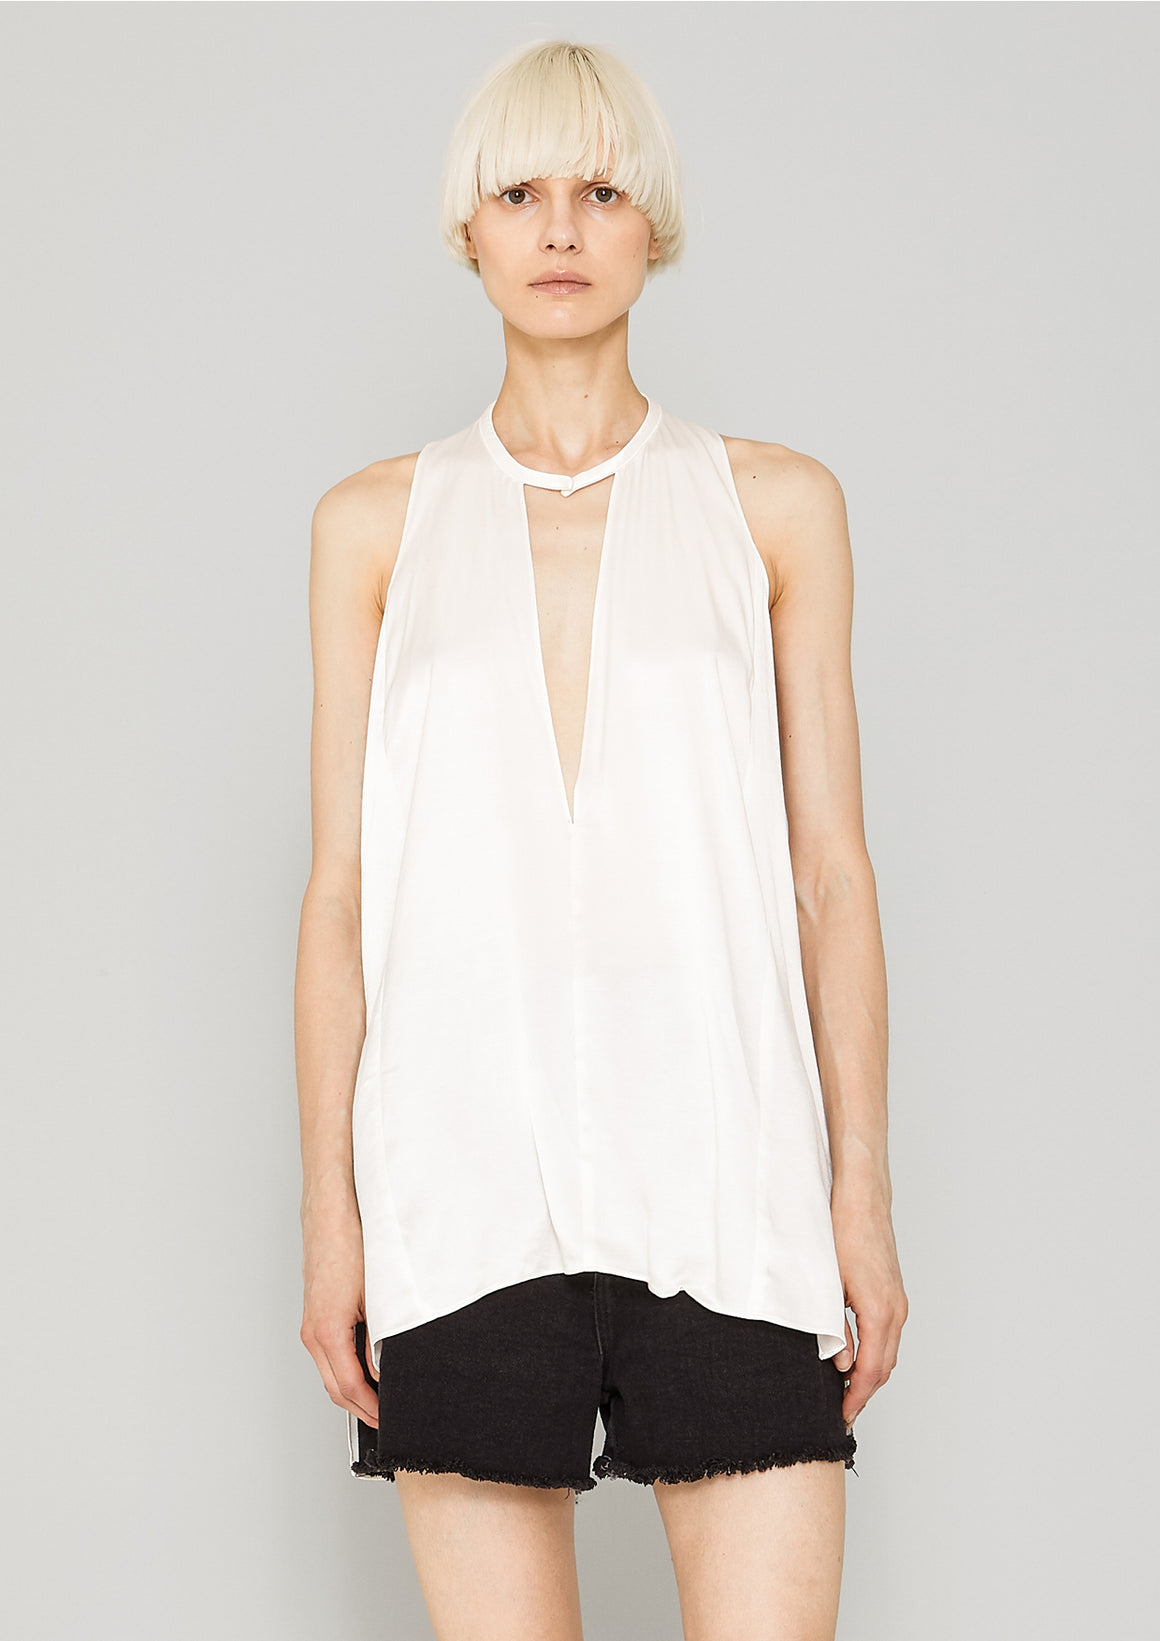 SHIRT - SILKY RAYON SATIN white